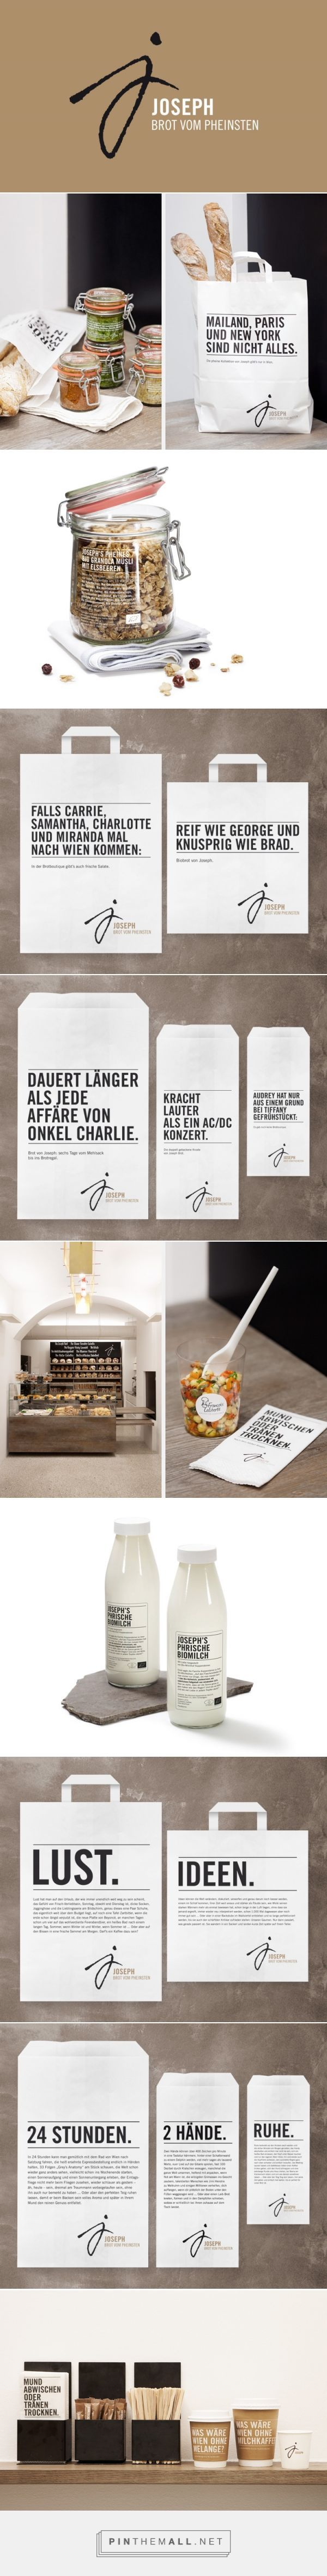 Martin Dvorak, Agentur für Gestaltungpackaging branding forJoseph Brot curated by Packaging Diva PD.  Wouldn't you like to try out this bakery? Delish.